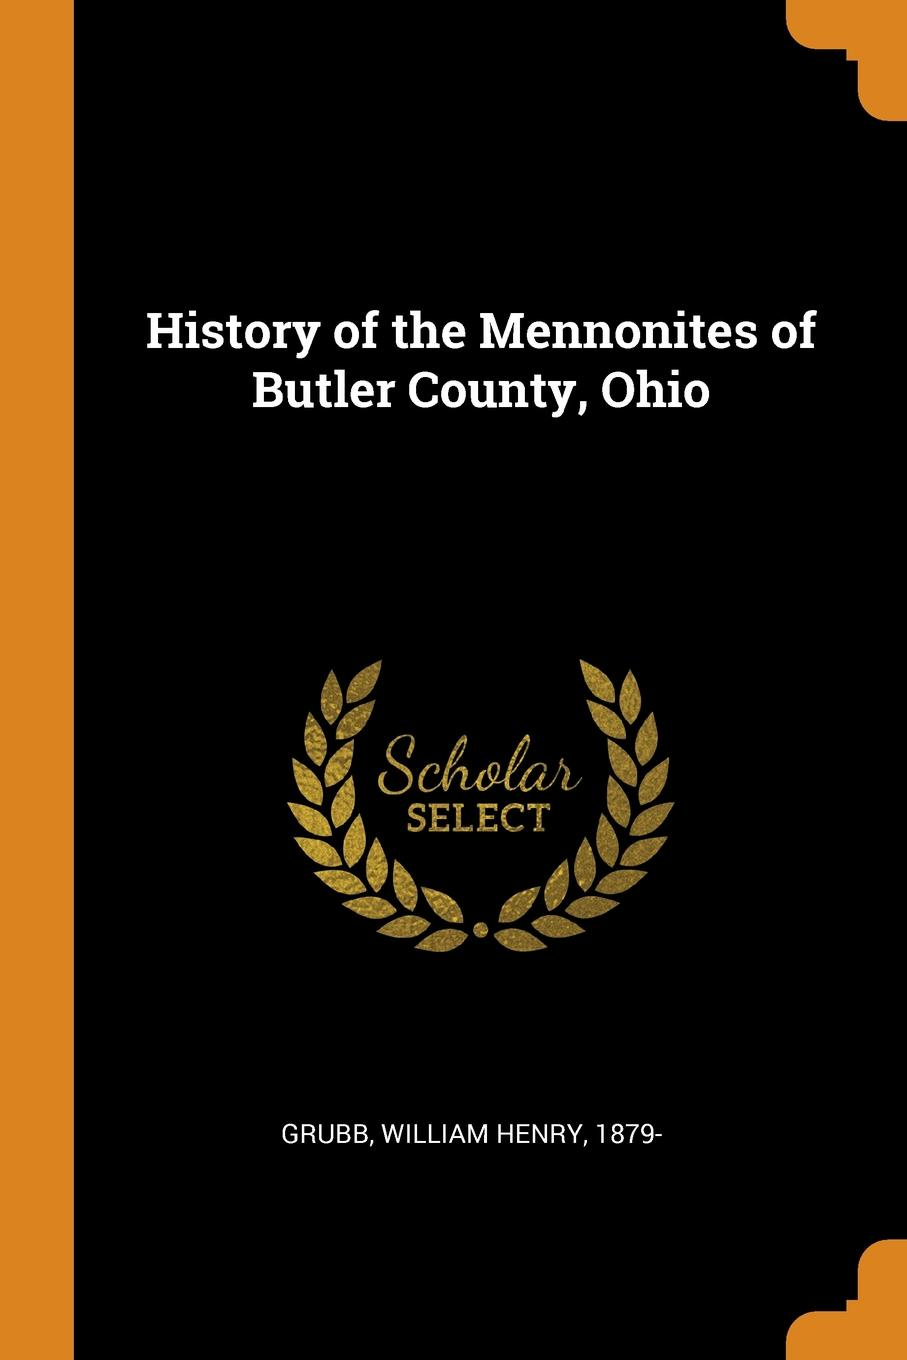 History of the Mennonites of Butler County, Ohio